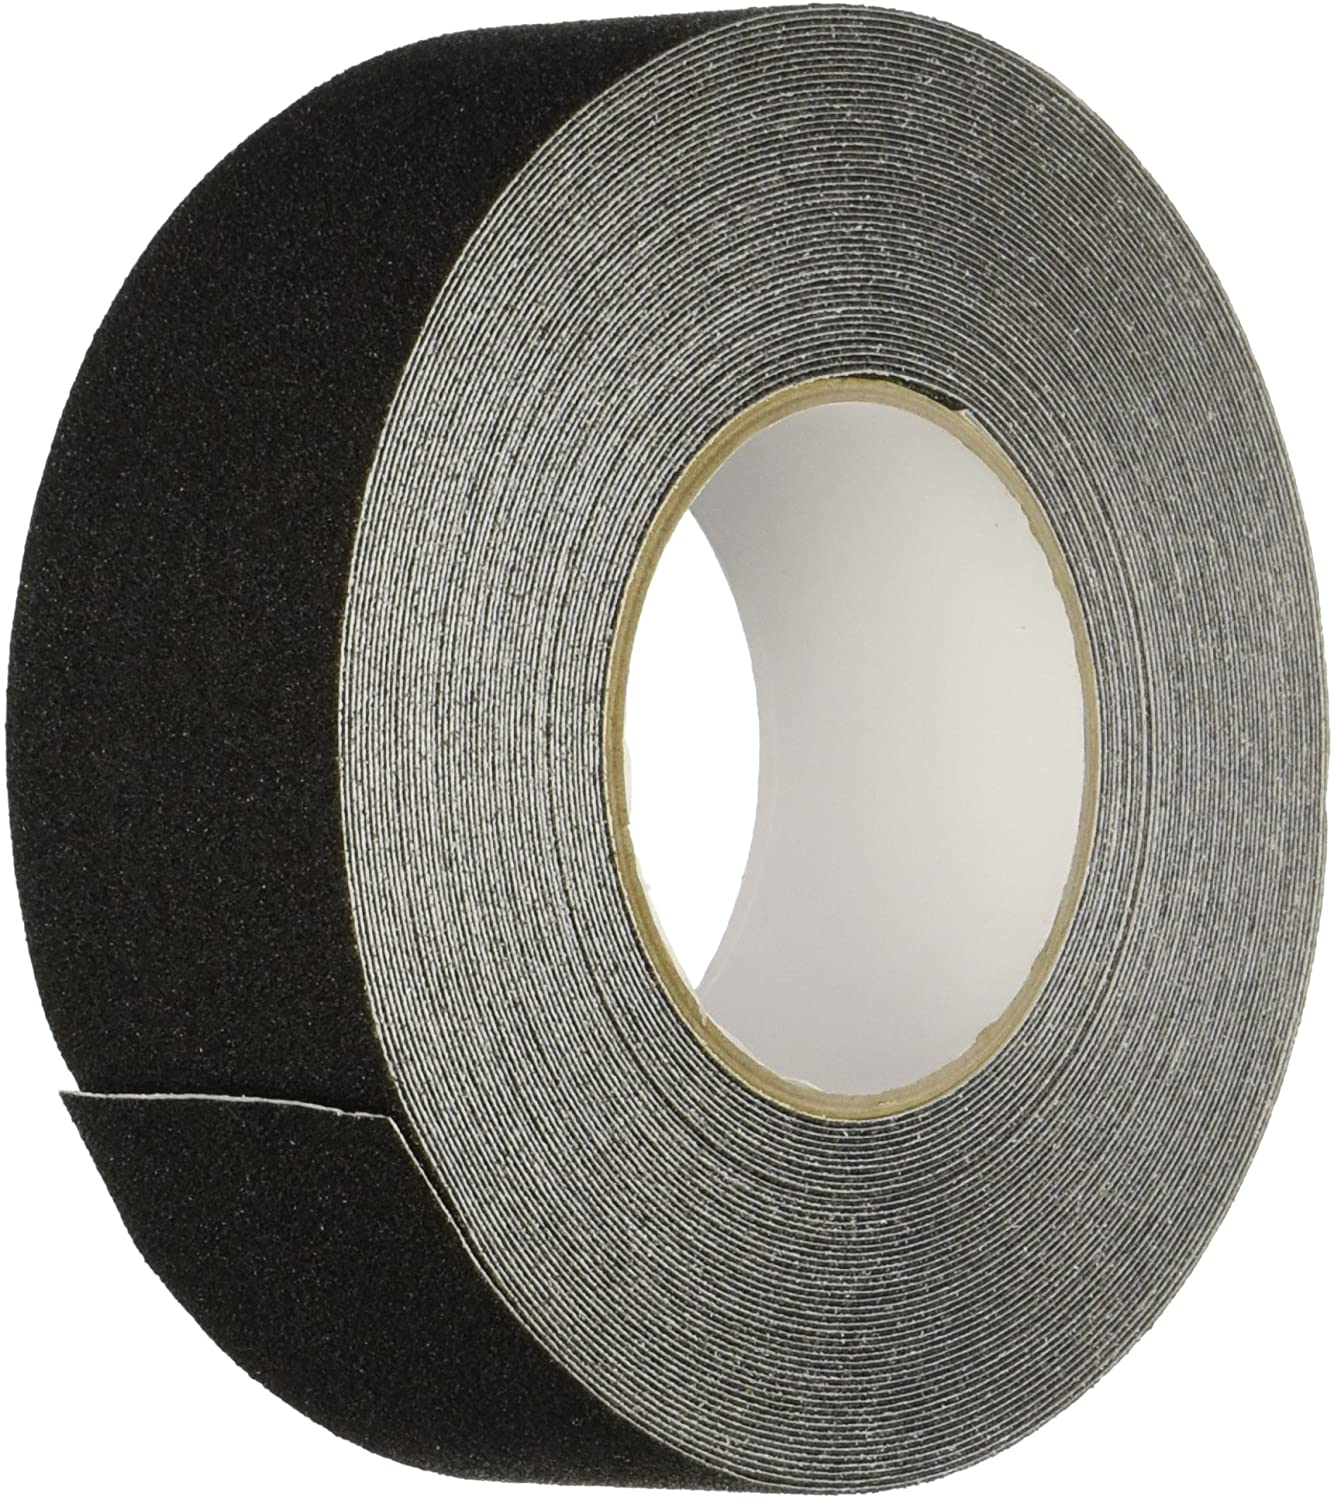 "6"" X 60' Foot Roll Heskins Safety Grip Anti Slip Tape Black NSTS6N"